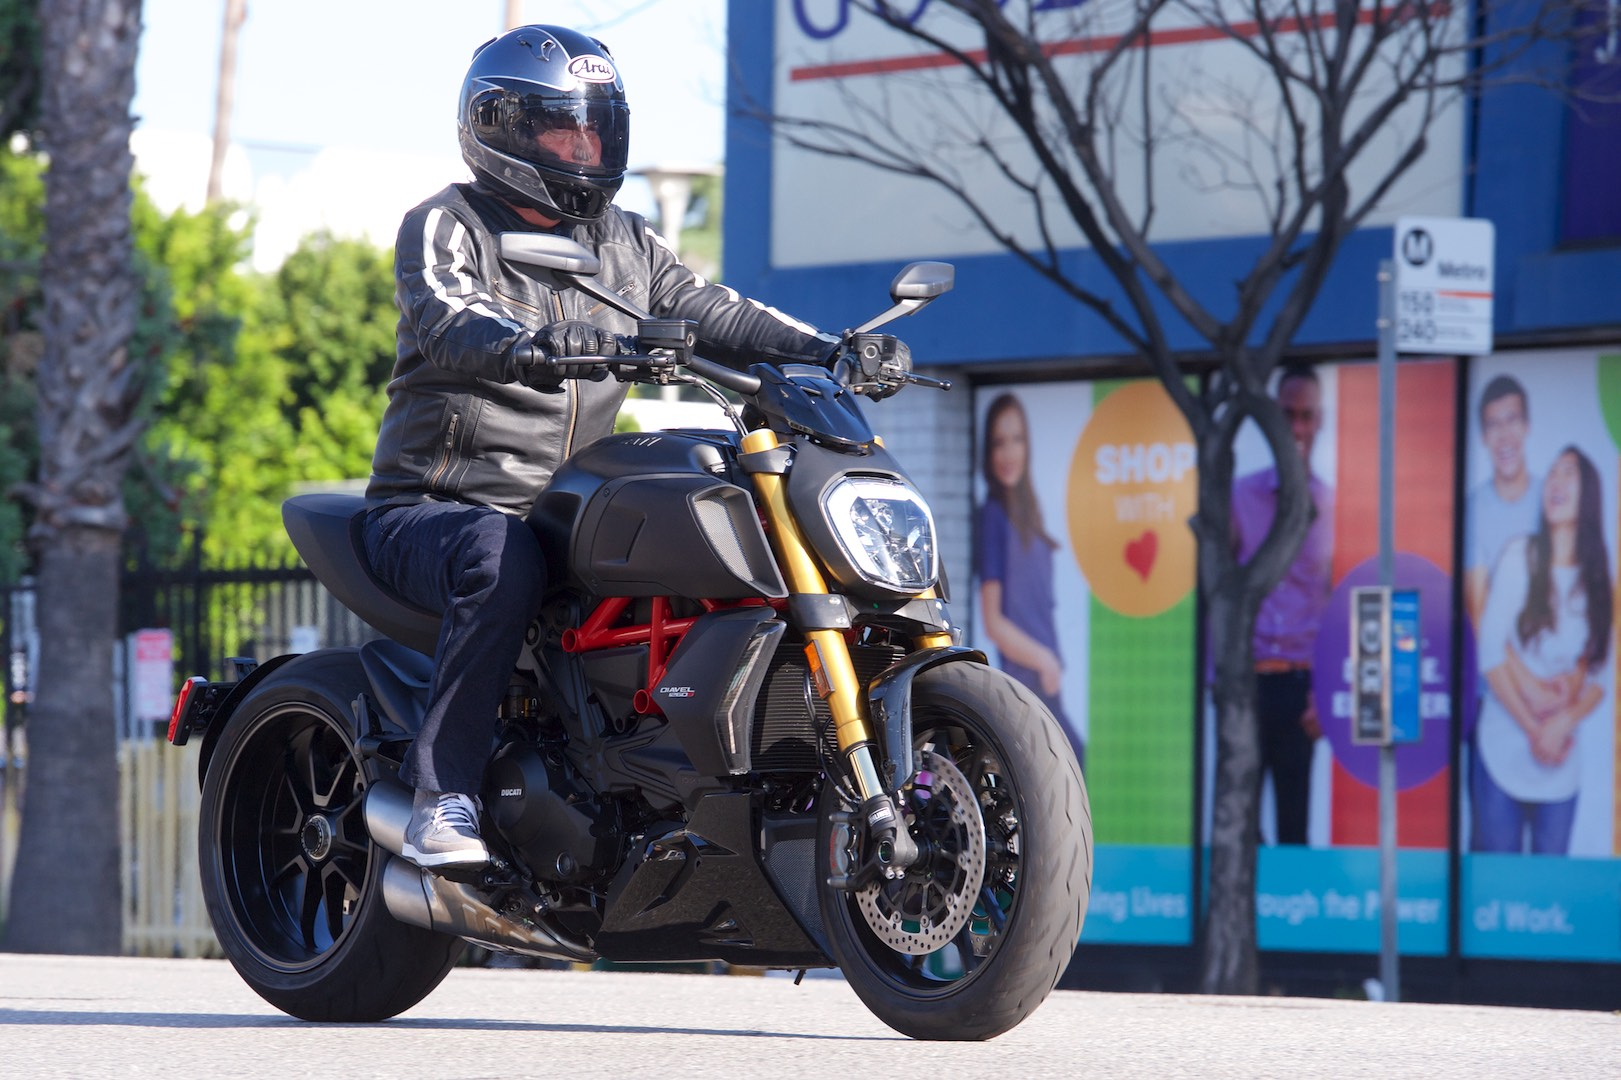 2019 Ducati Diavel 1260 S Review